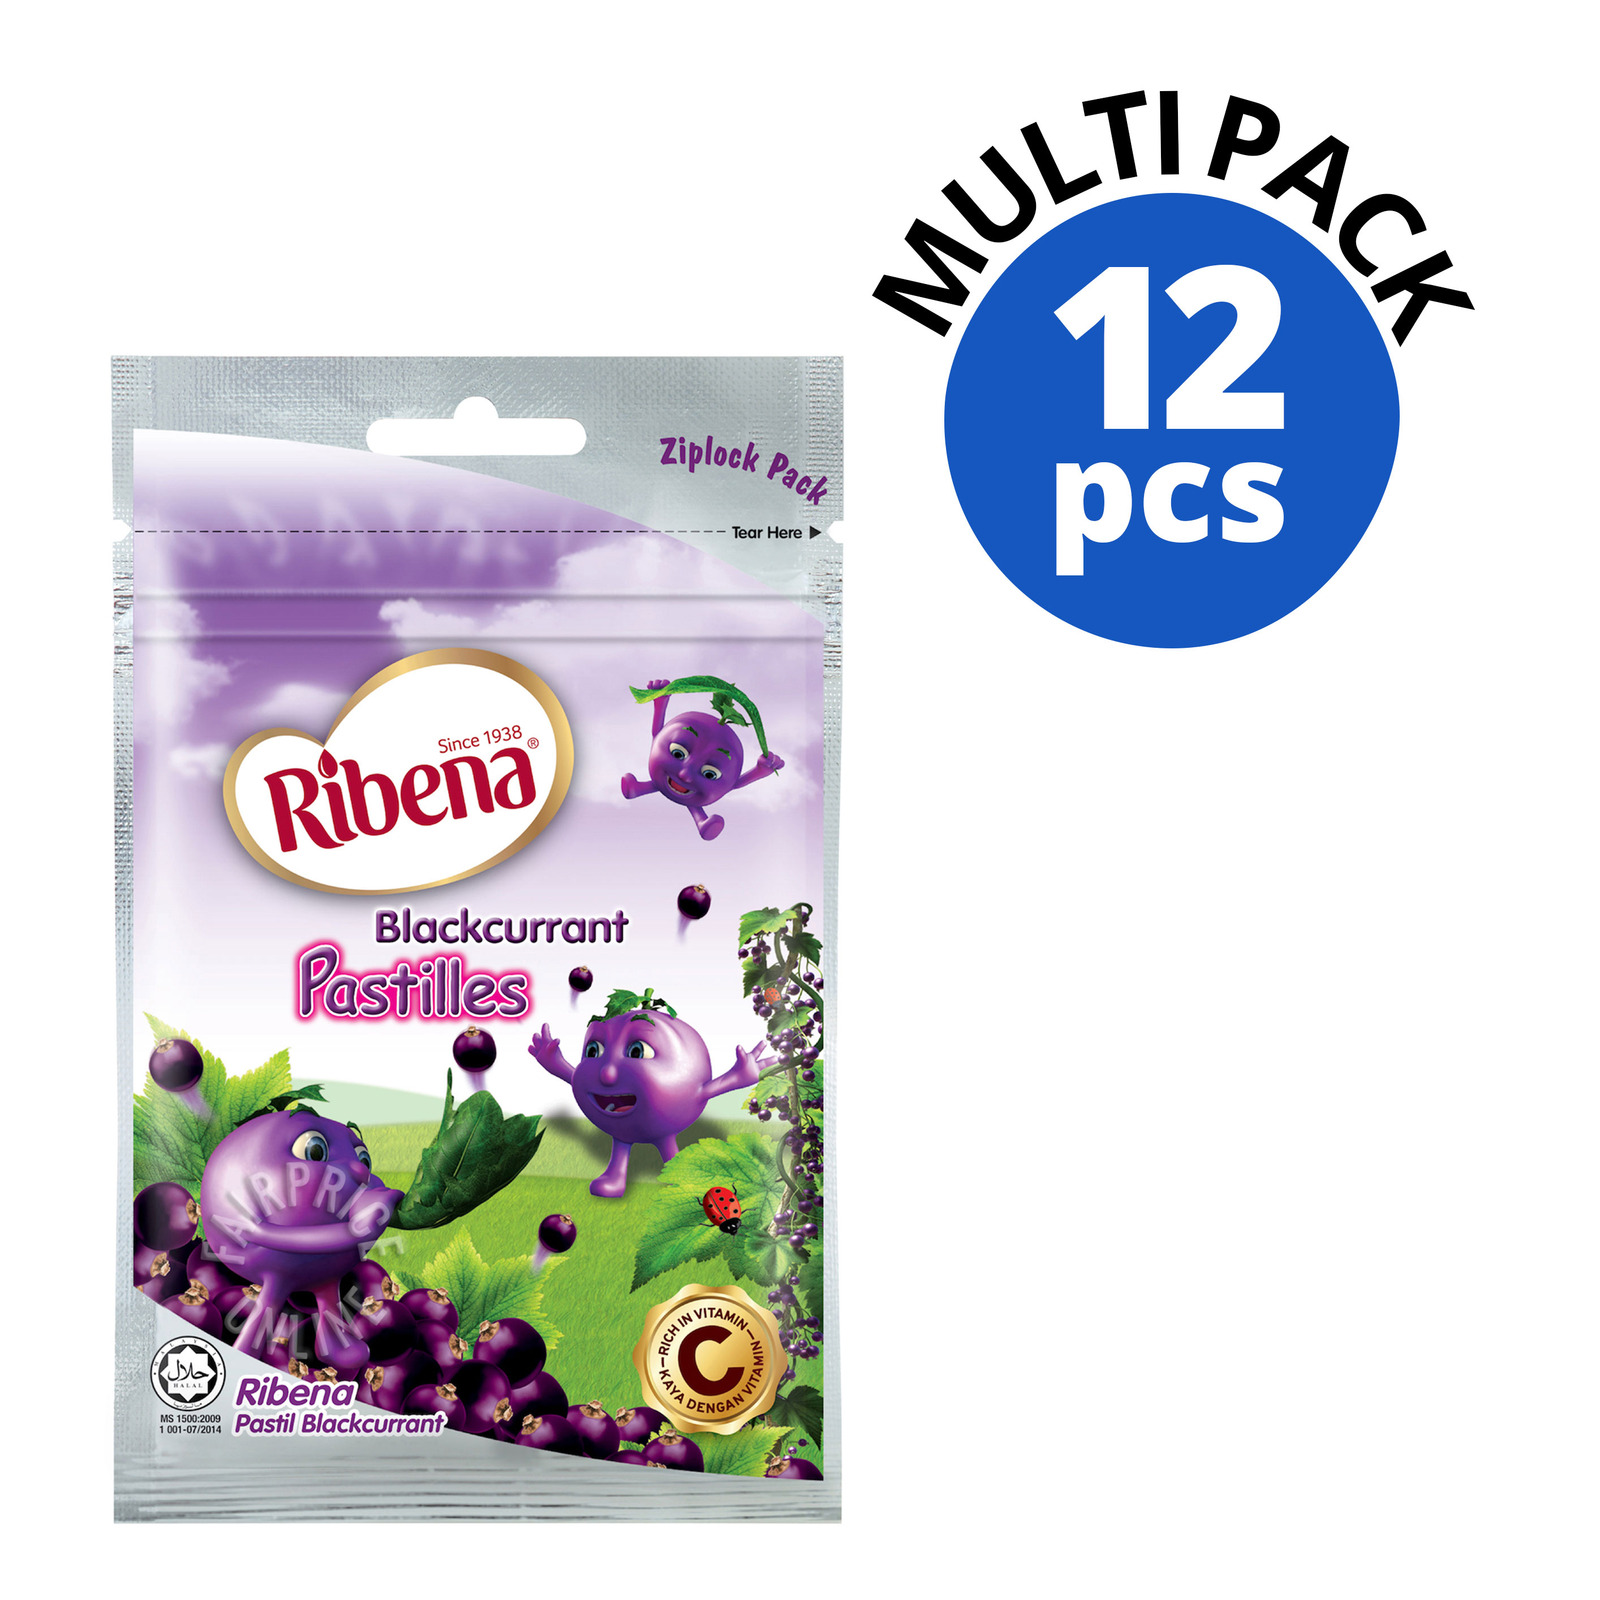 Ribena Blackcurrant Pastilles (Zipper Pack)